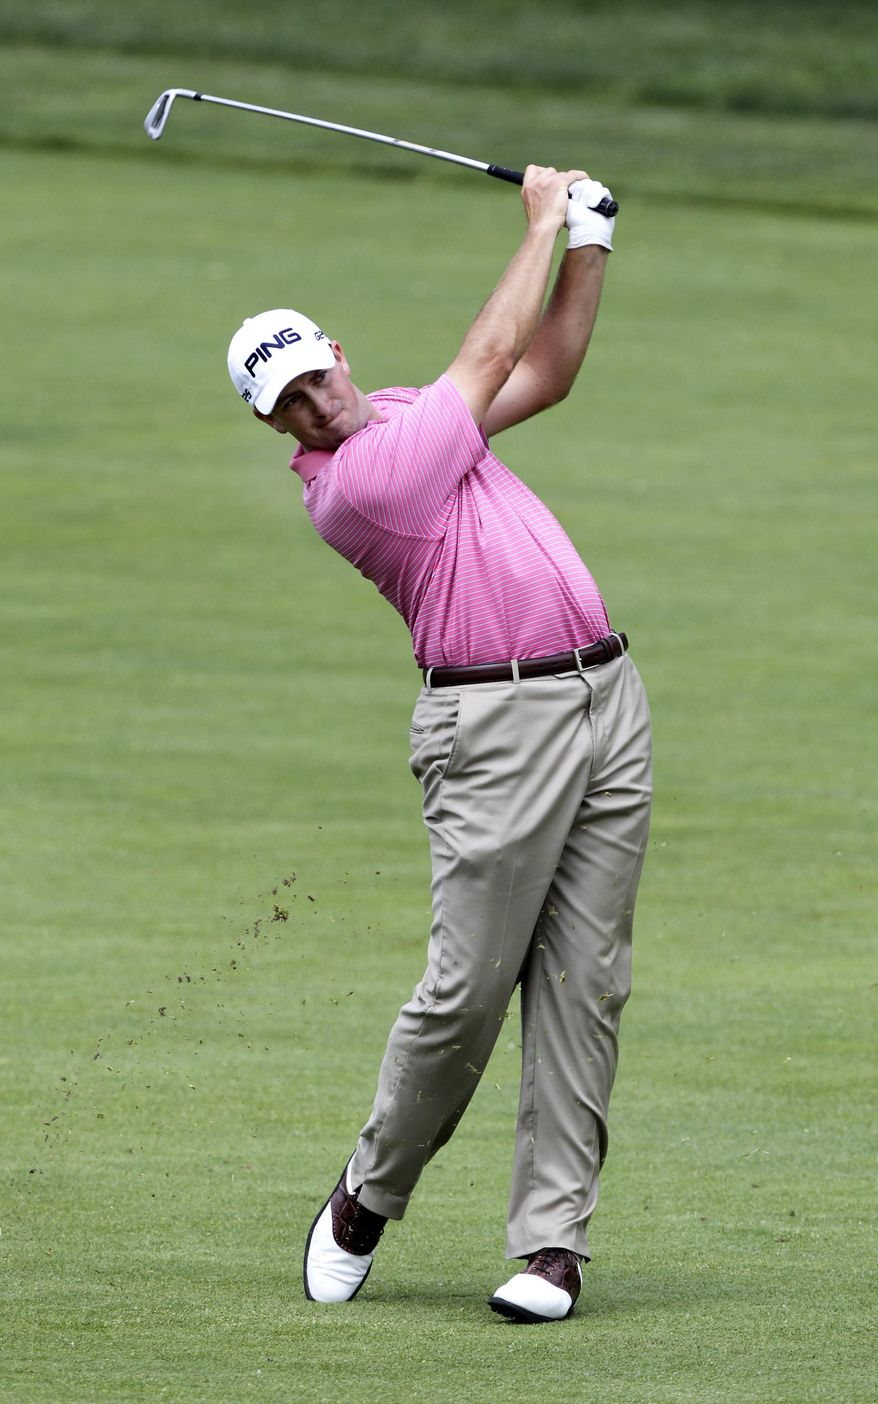 Michael Thompson hits his approach shot on the 18th hole during the first round of the Memorial golf tournament Thursday, May 29, 2014, in Dublin, Ohio. (AP Photo/Jay LaPrete)